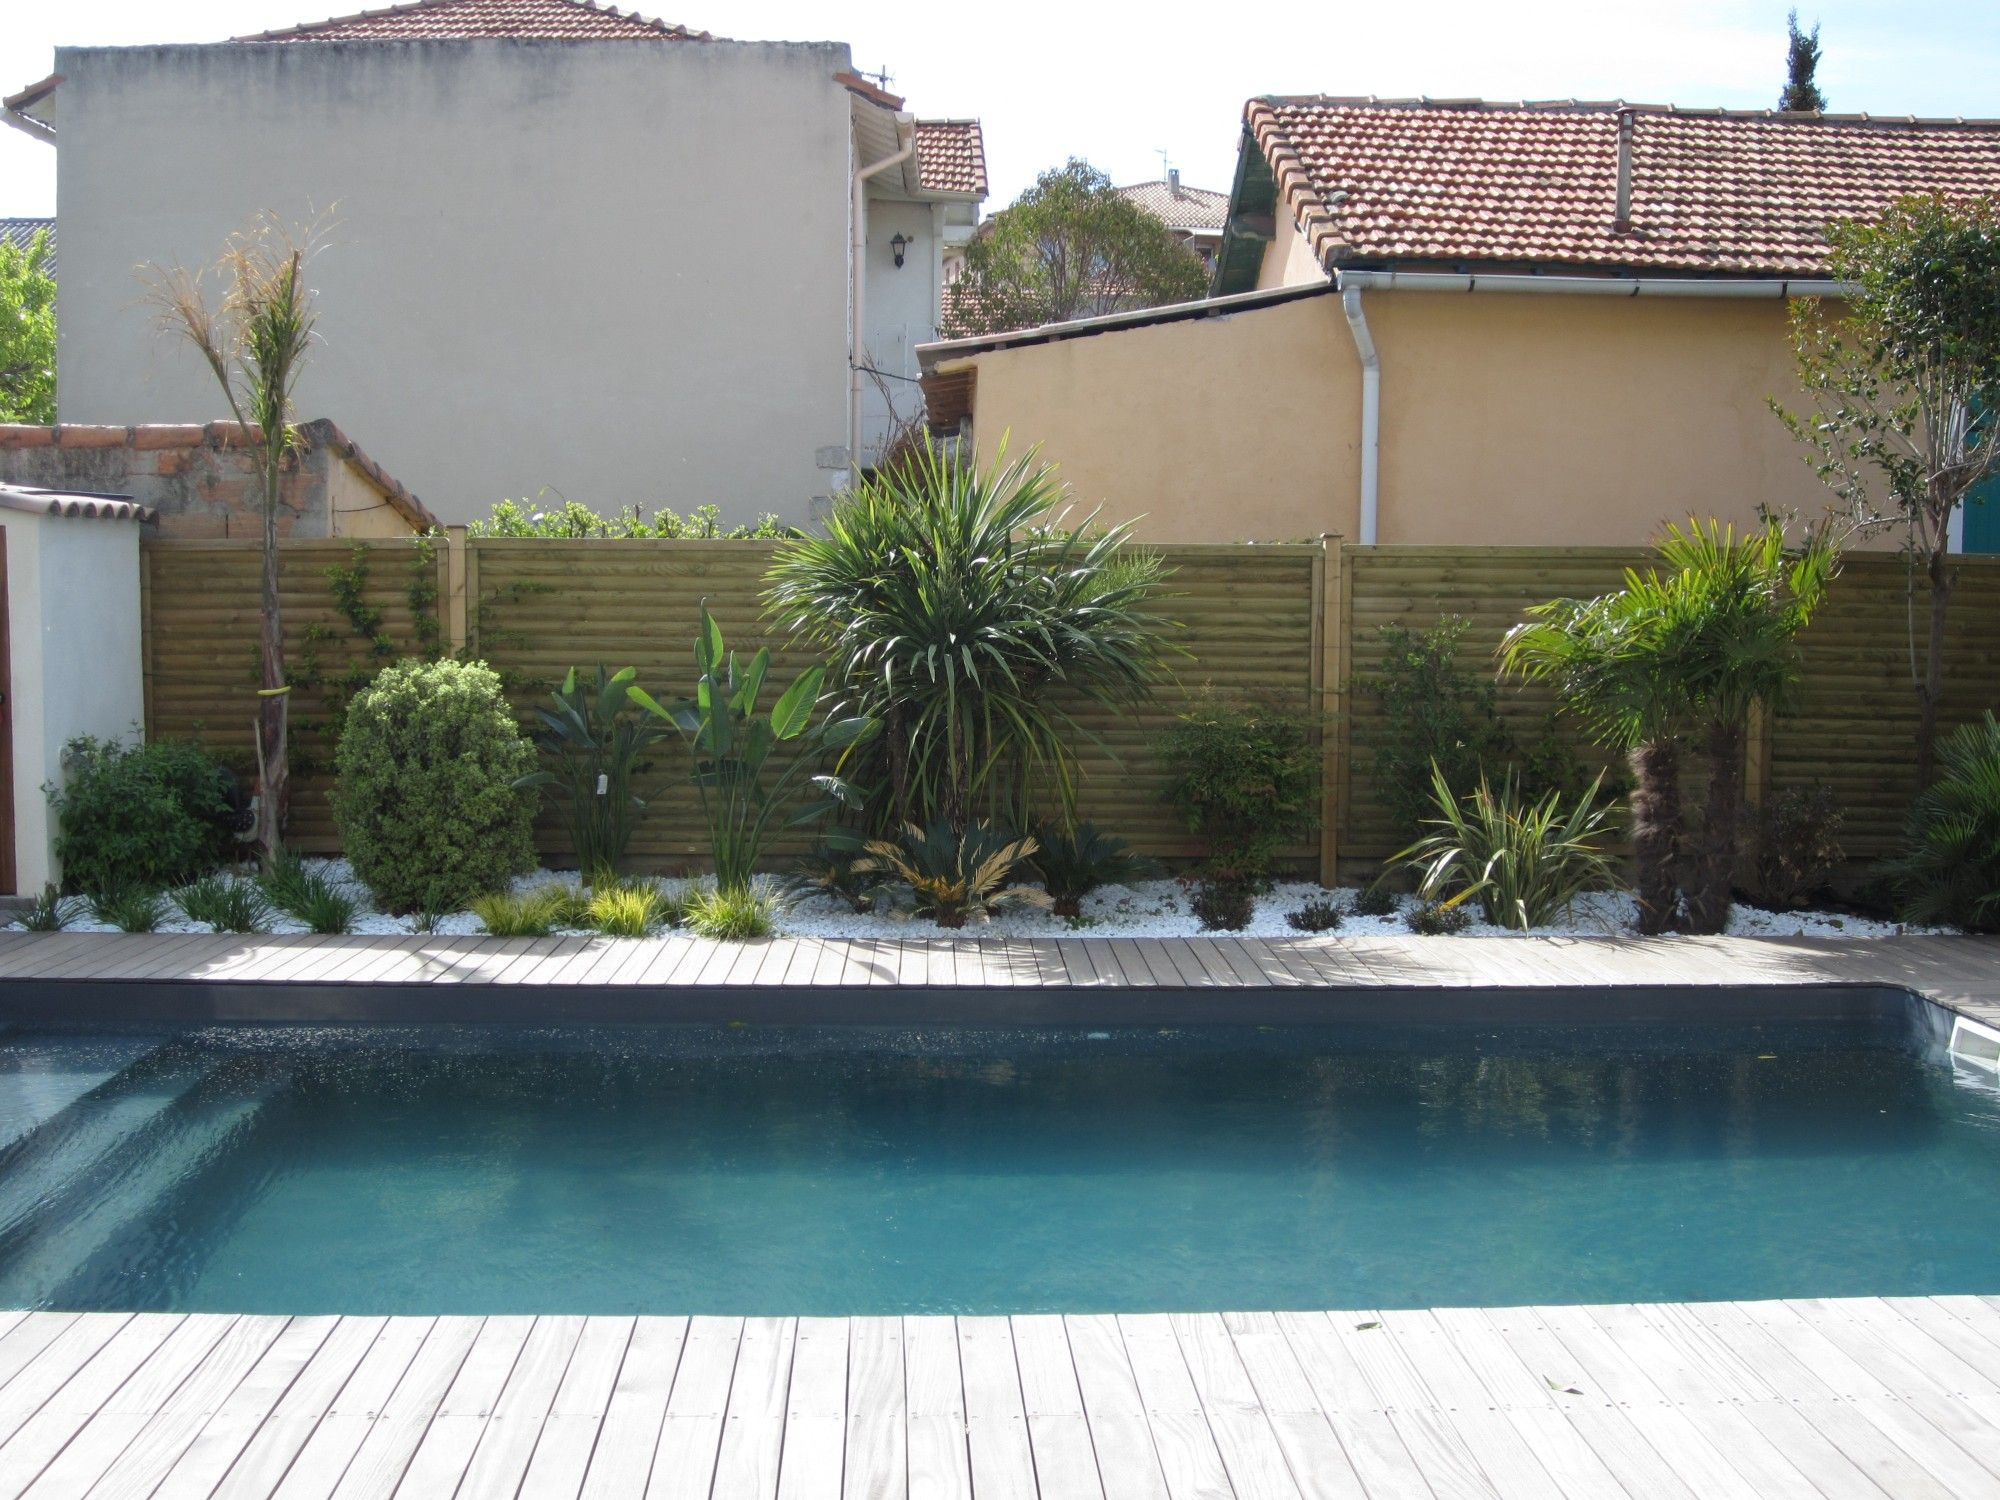 Piscine terrasse en bois am nagement paysager avec de for Amenagement decoration jardin